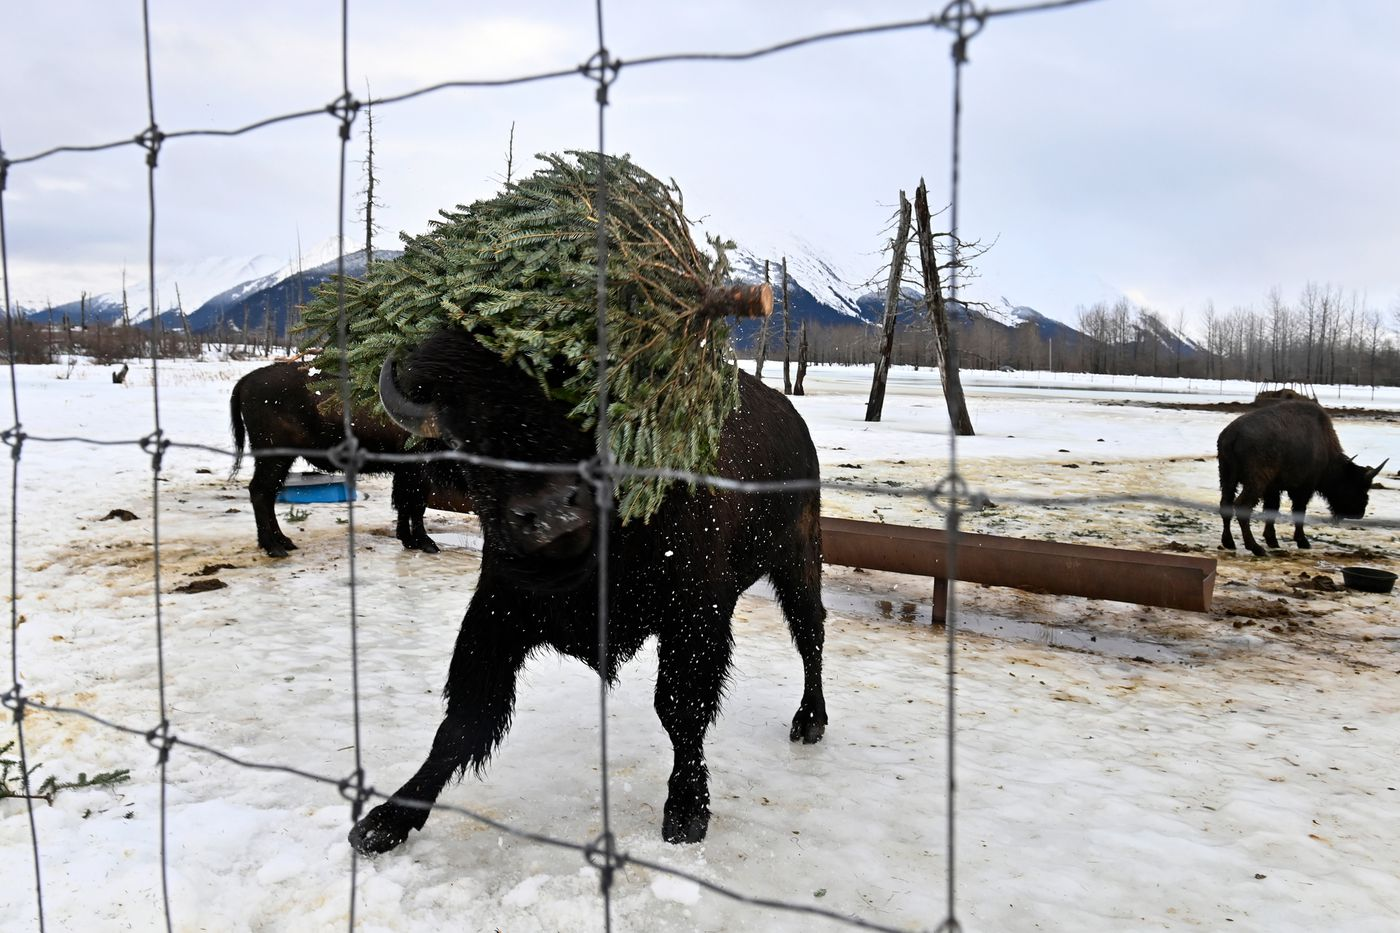 A wood bison named Luke Bryan tosses a Christmas tree around at the Alaska Wildlife Conservation Center on January 22, 2021. Curator Sarah Howard said the trees serve as an enrichment activity for the bison. (Marc Lester / ADN)